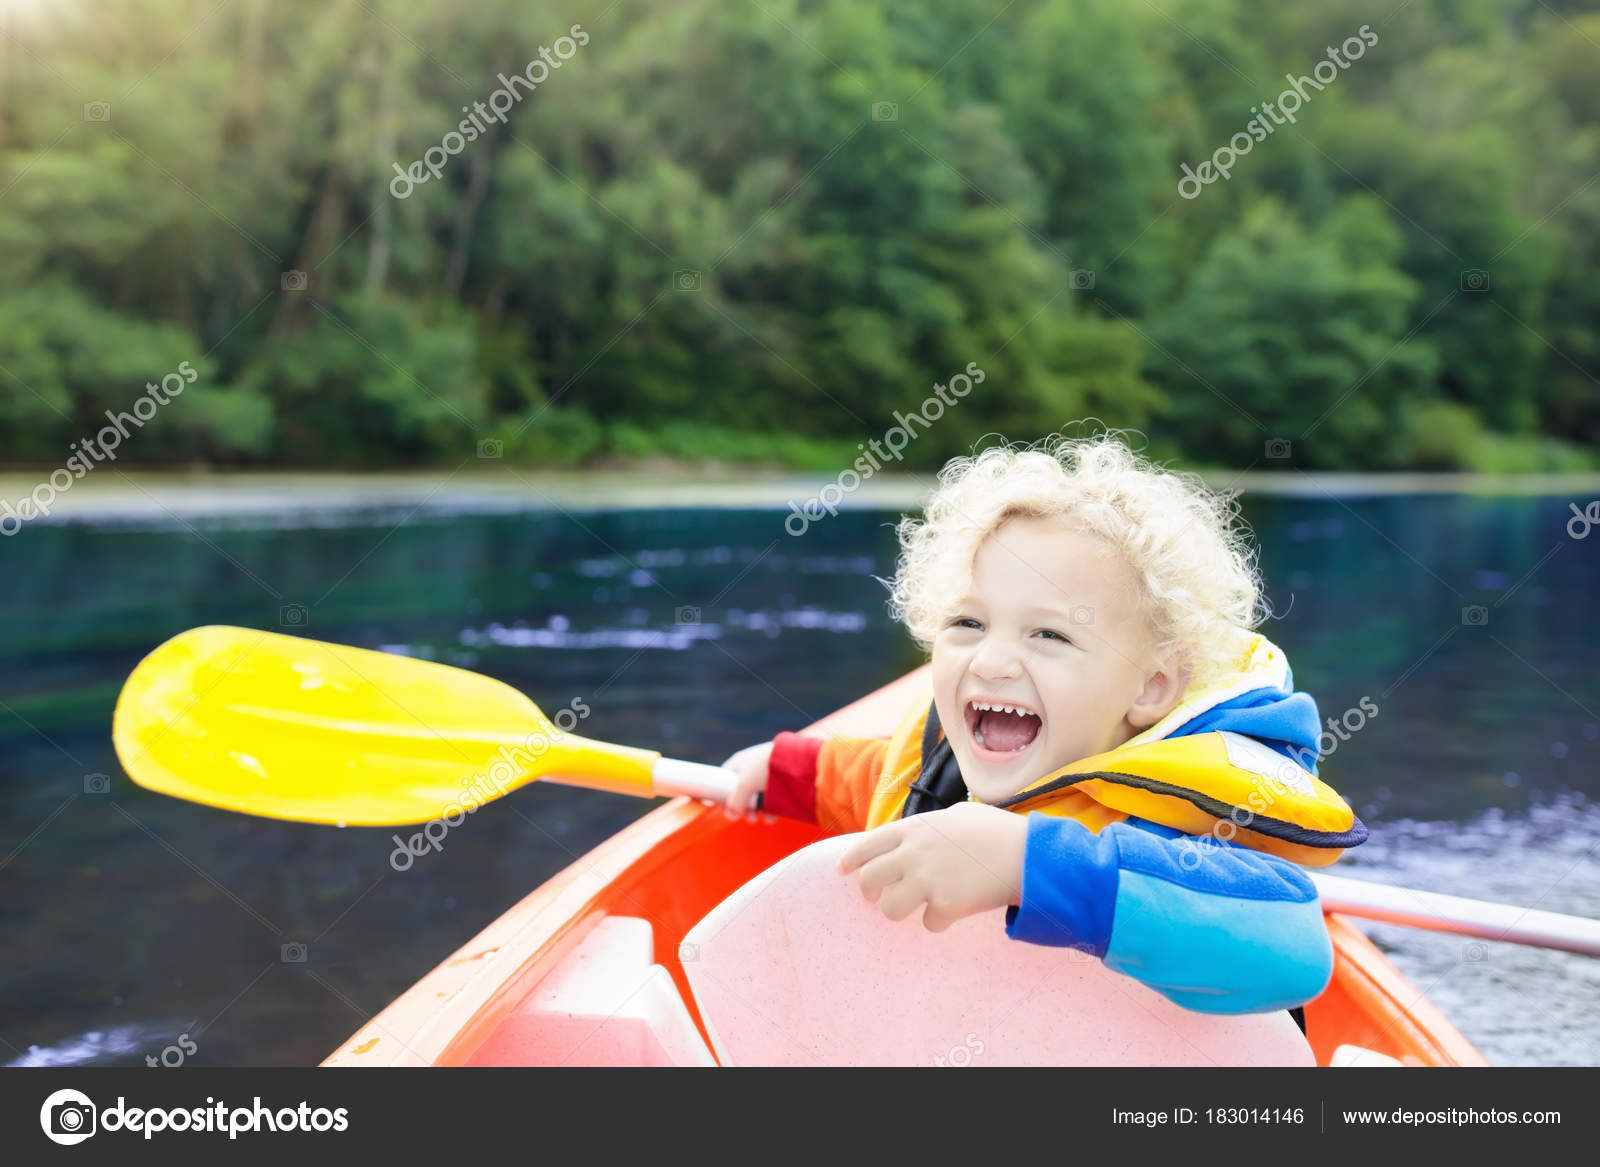 Summer Camp For Kids Kayaking And Canoeing With Family Children On Canoe Little Boy Kayak Ride Wild Nature Water Fun Vacation